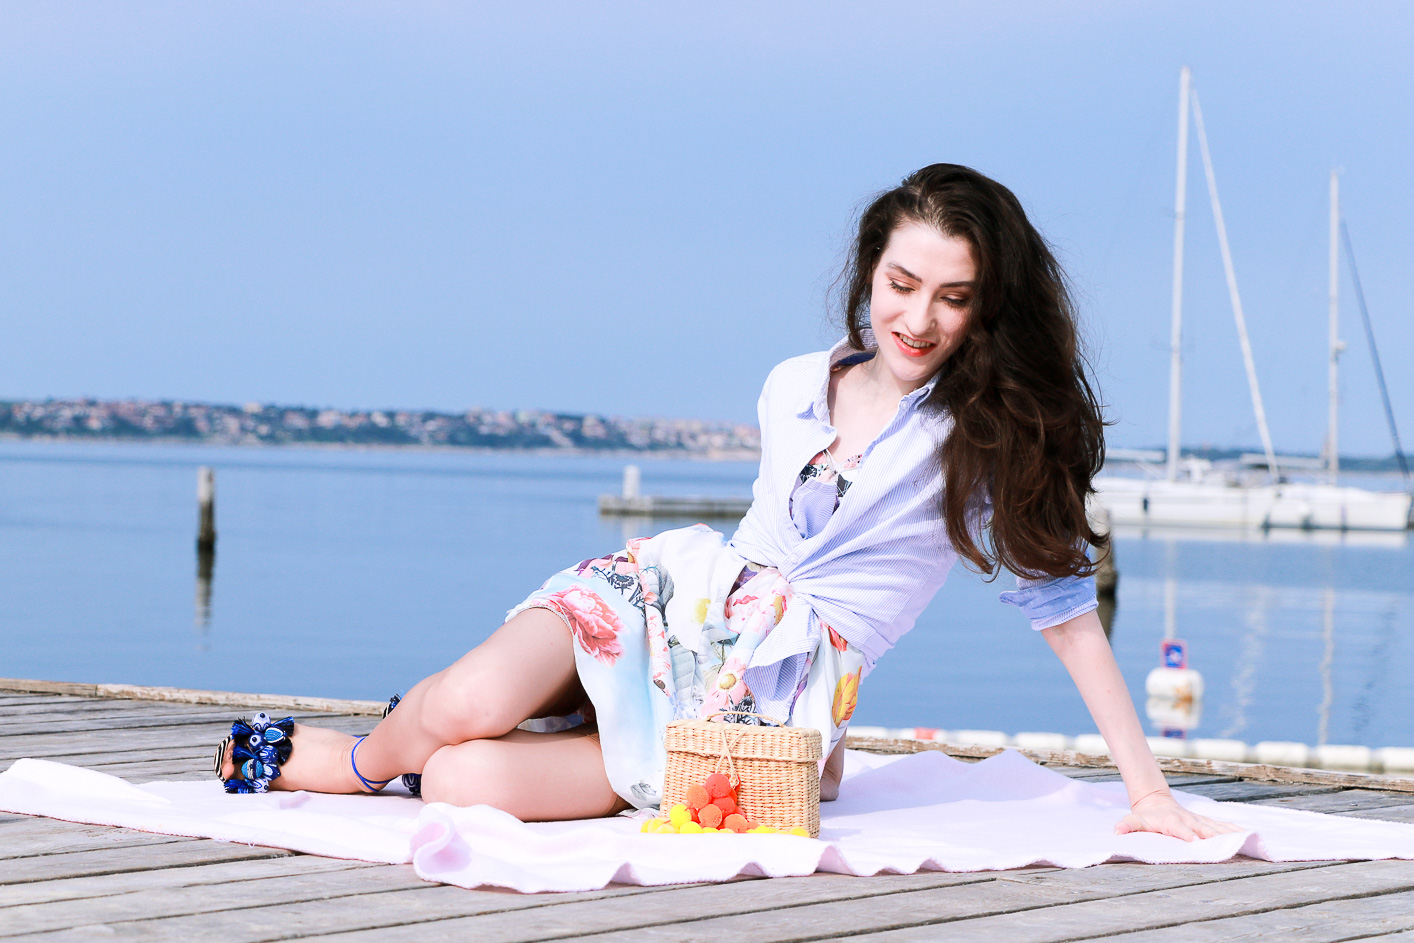 Fashion blogger Veronika Lipar of Brunette From Wall Street having first summer picnic on the seaside wearing floral summer dress, a shirt with a knot and raffia basket bag